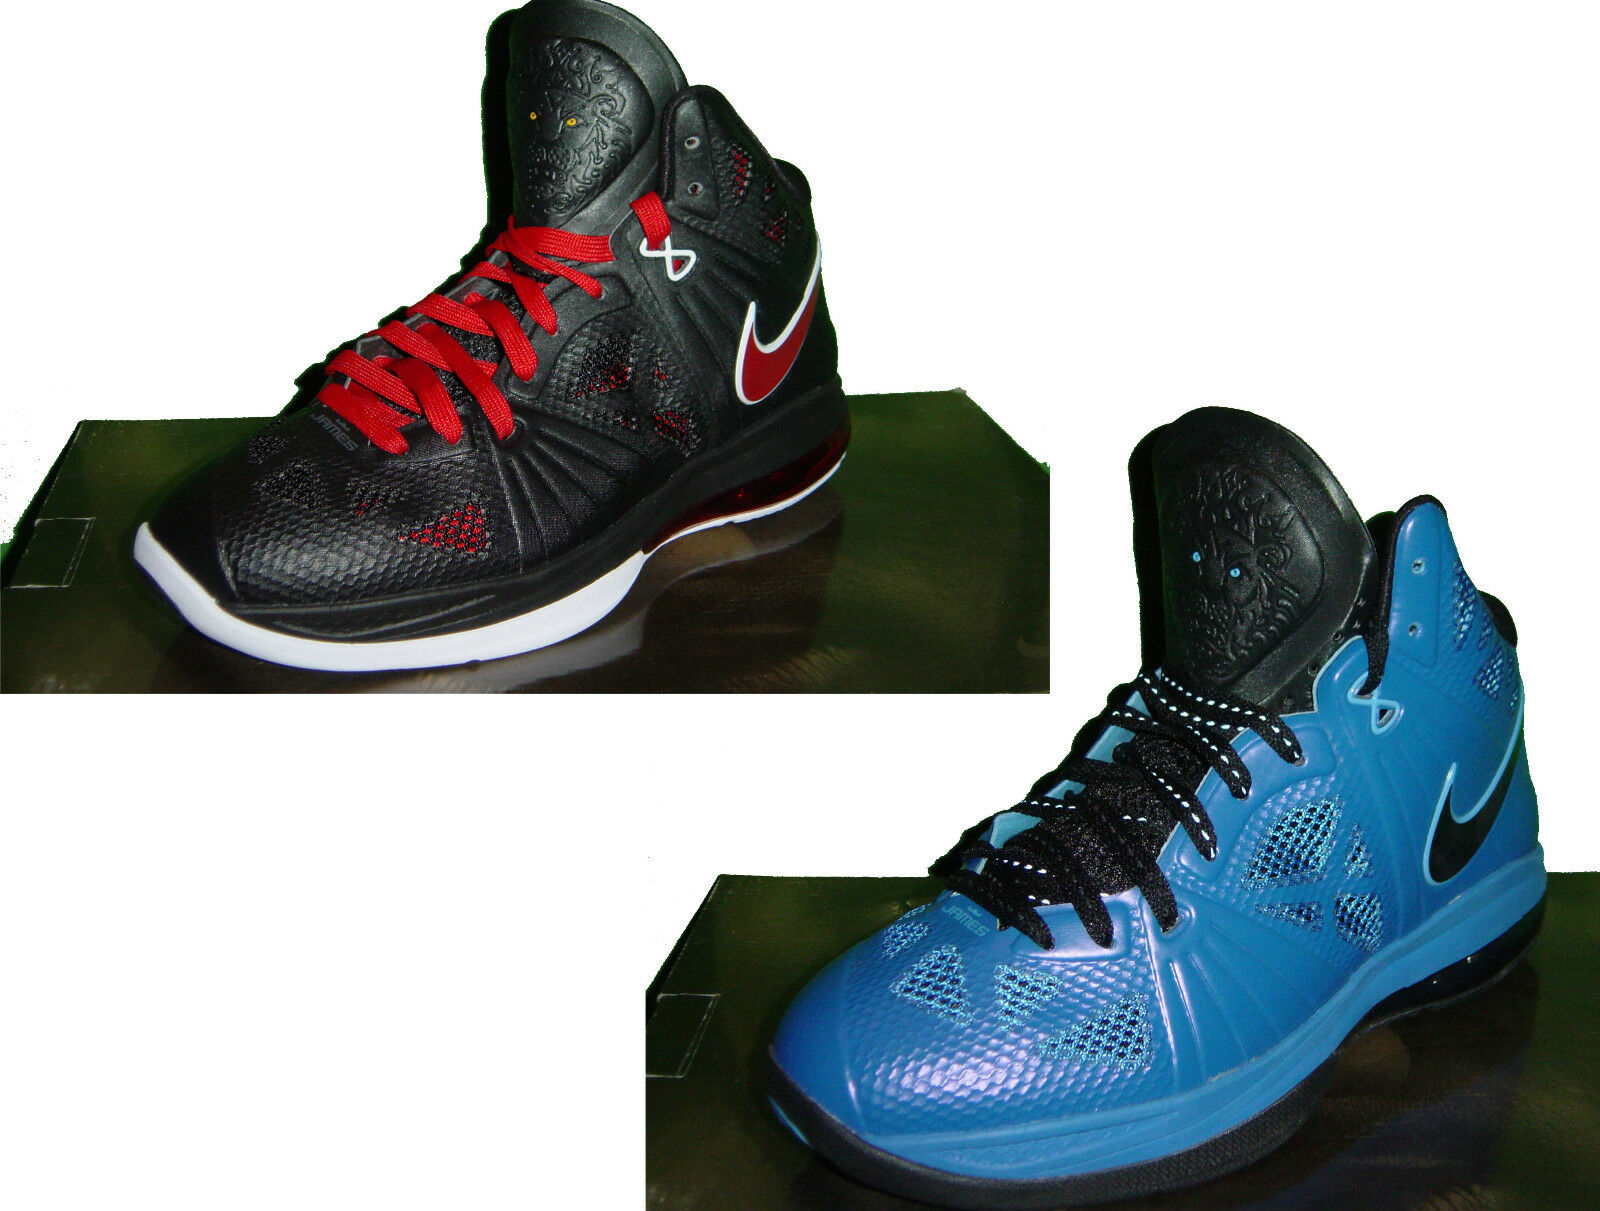 ORIGINAL MENS HYPERFUSE NIKE LEBRON 8 P.S HYPERFUSE MENS BASKETBALL TRAINERS BLACK/BLUE ec8929